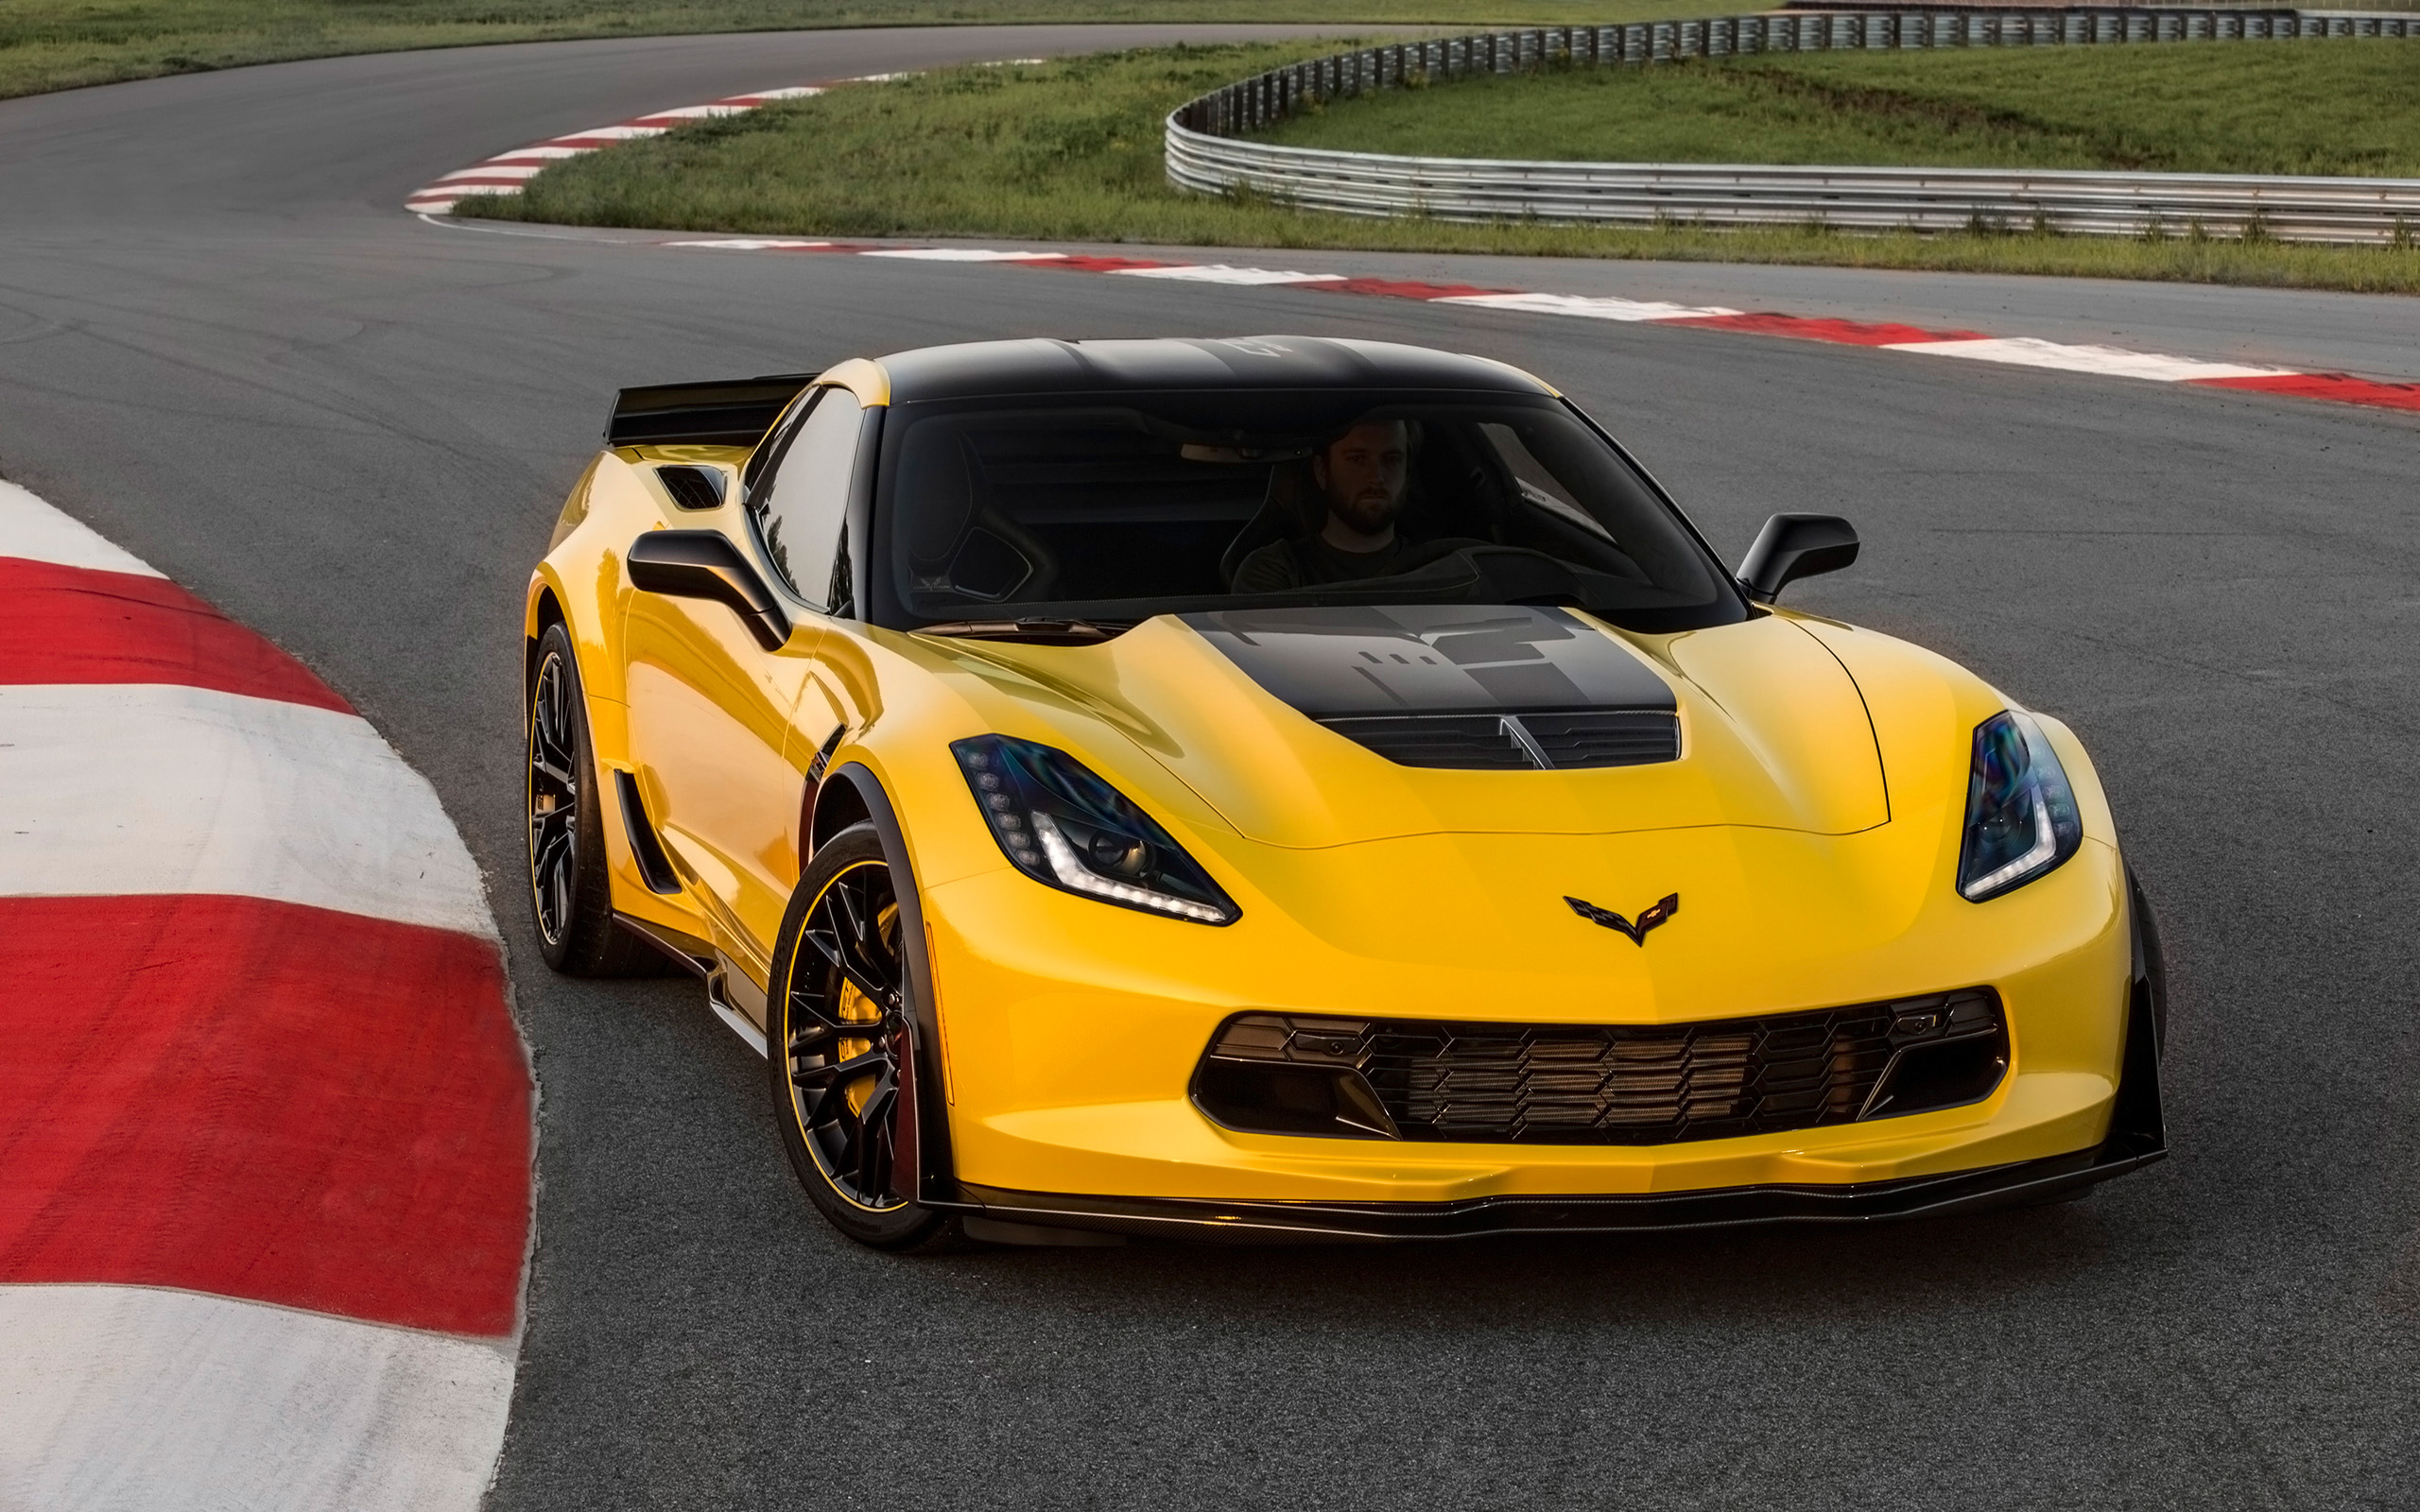 2016 chevrolet corvette z06 c7 r edition wallpaper hd car wallpapers